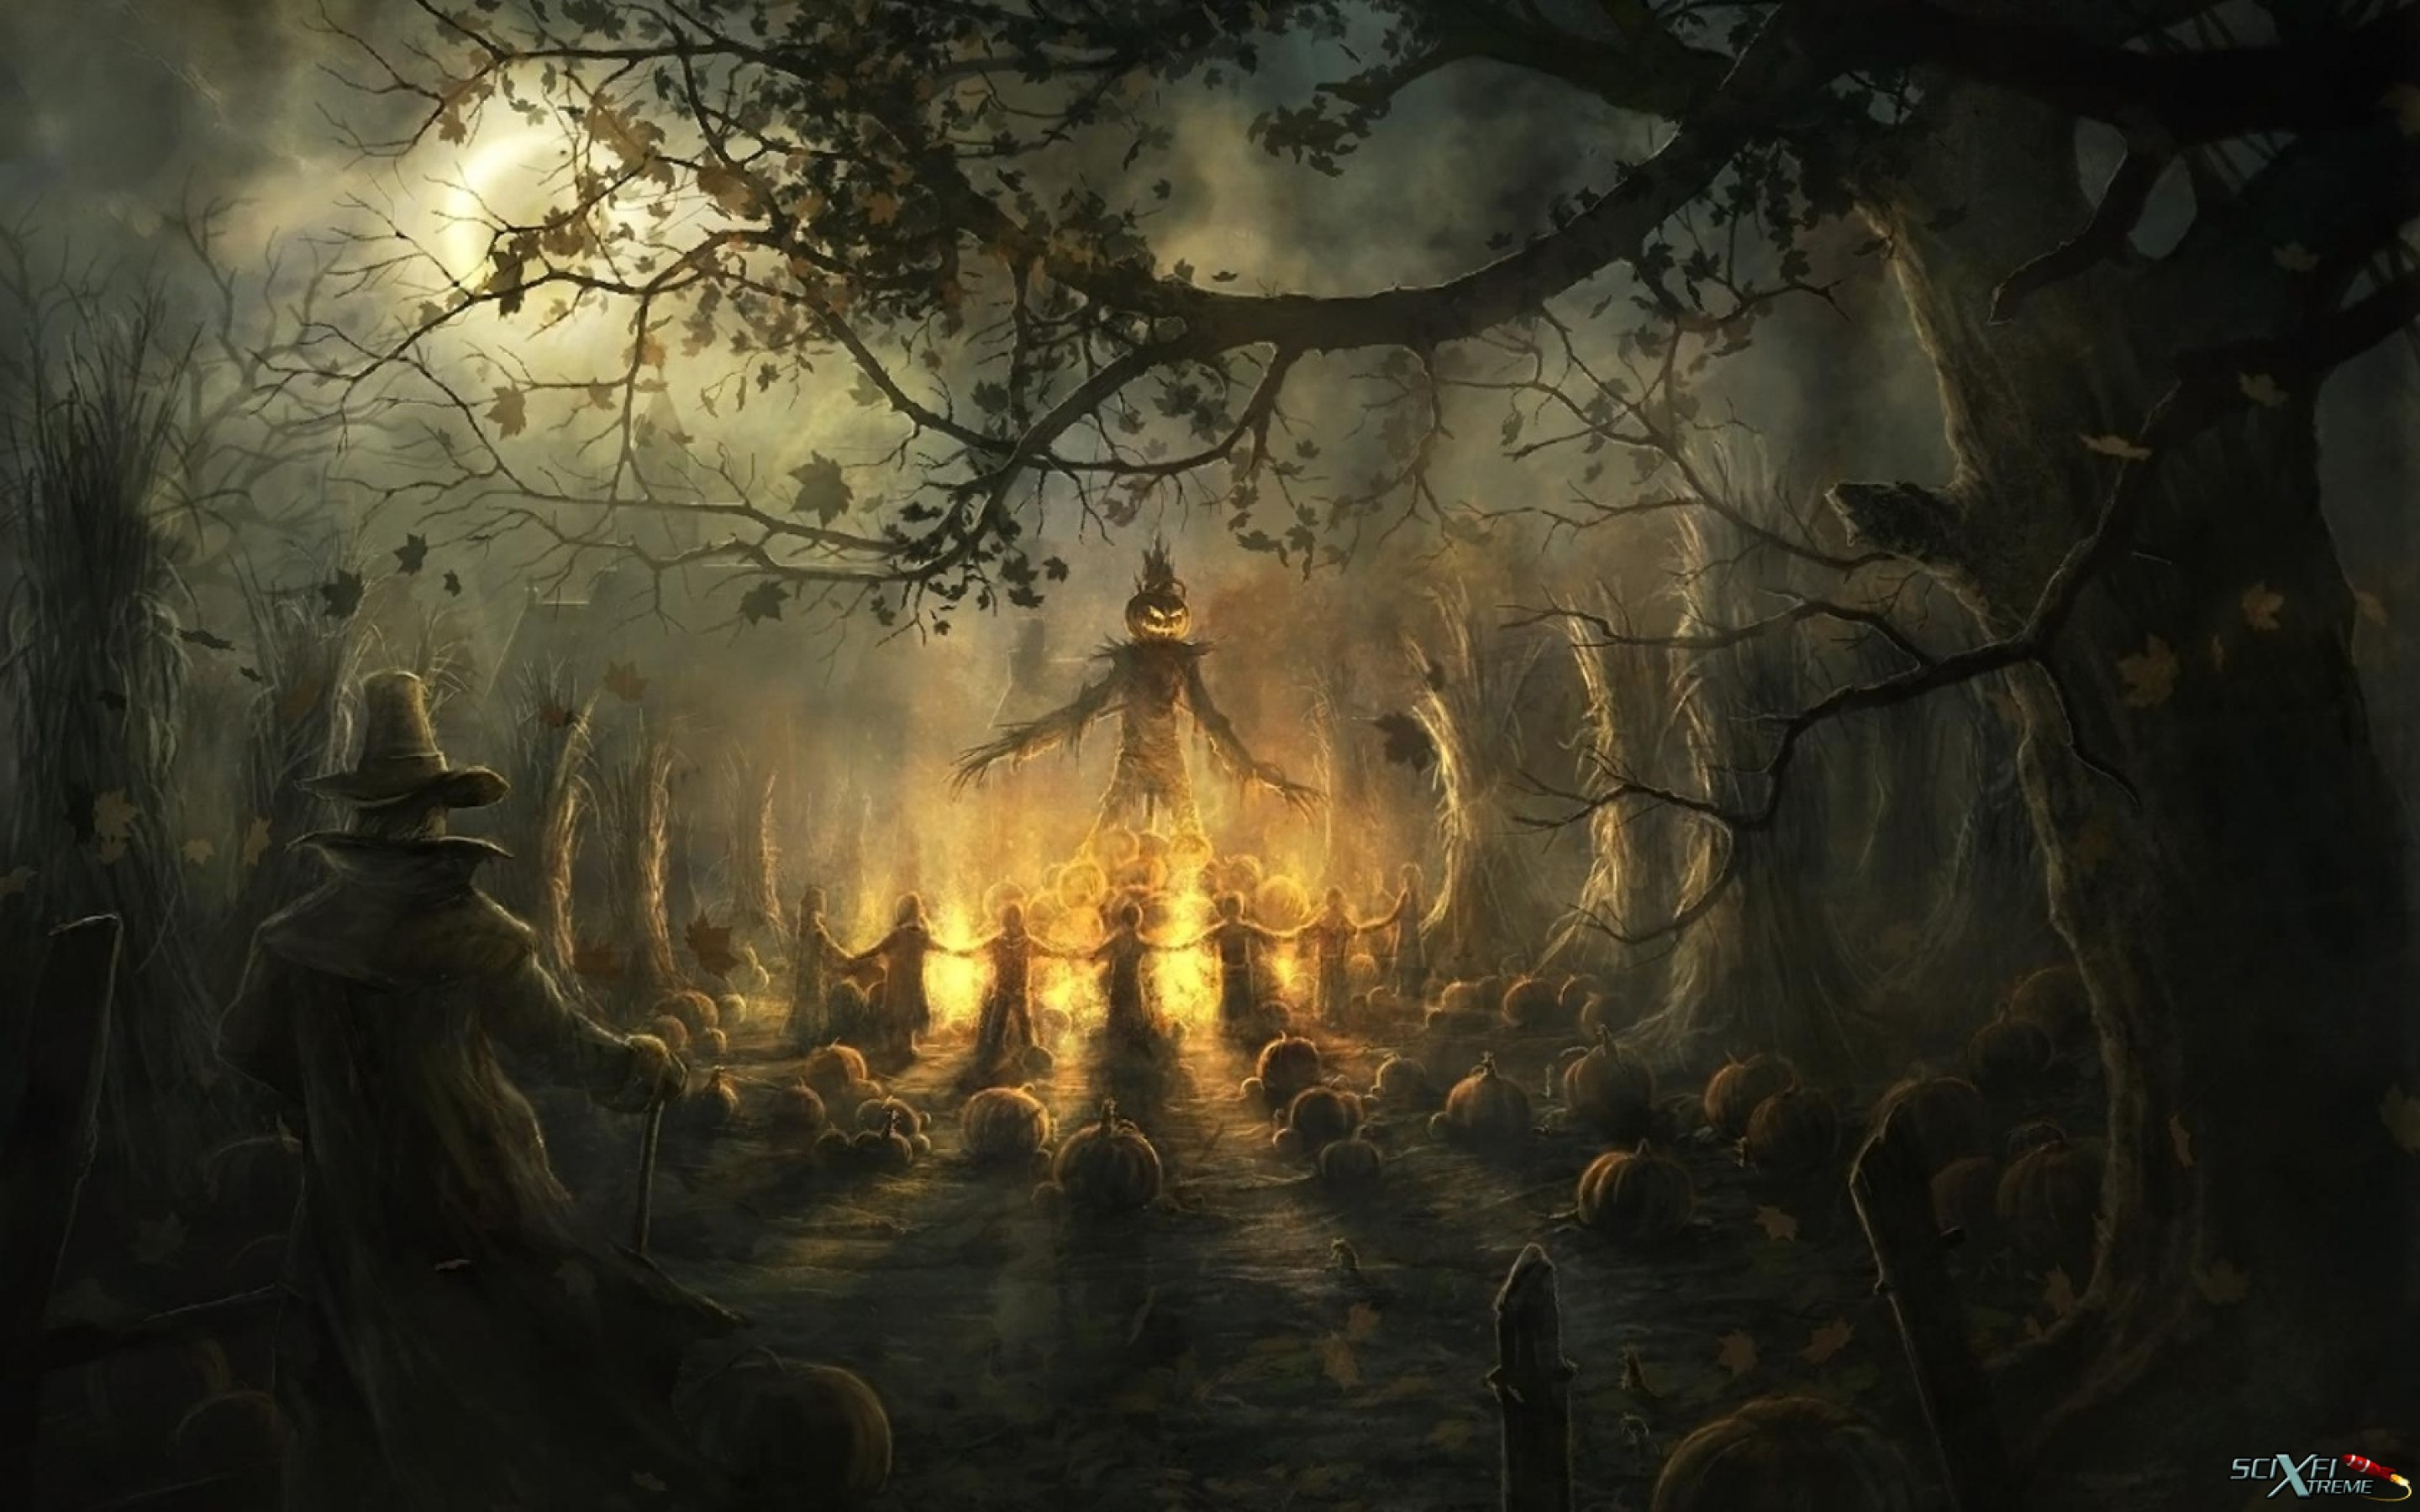 Res: 2880x1800, Scary Halloween Hd Wallpaper